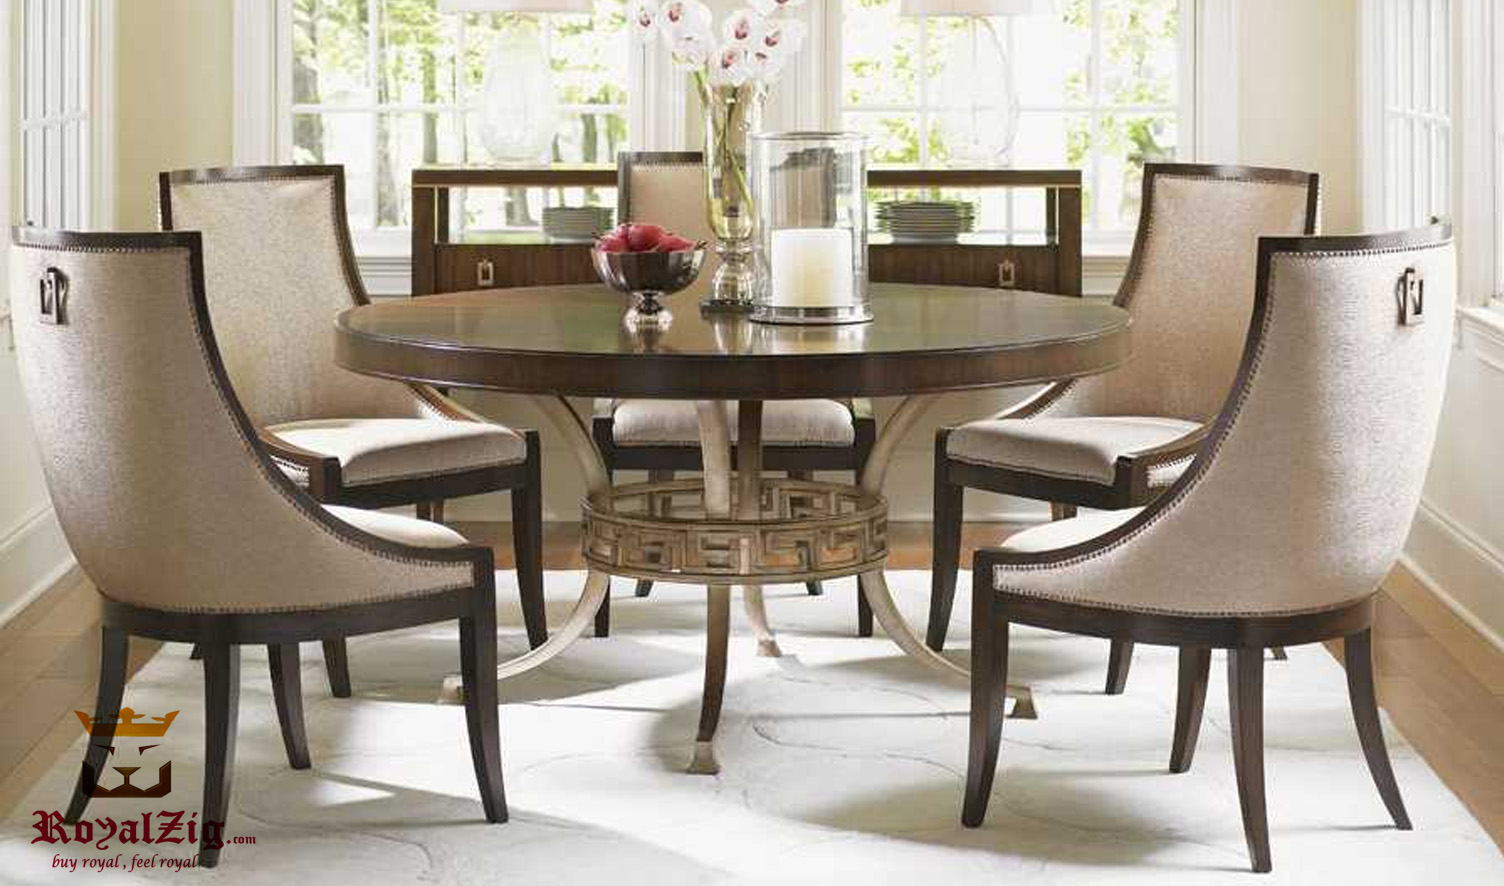 California Mid Century Modern Round Dining Table Online in India